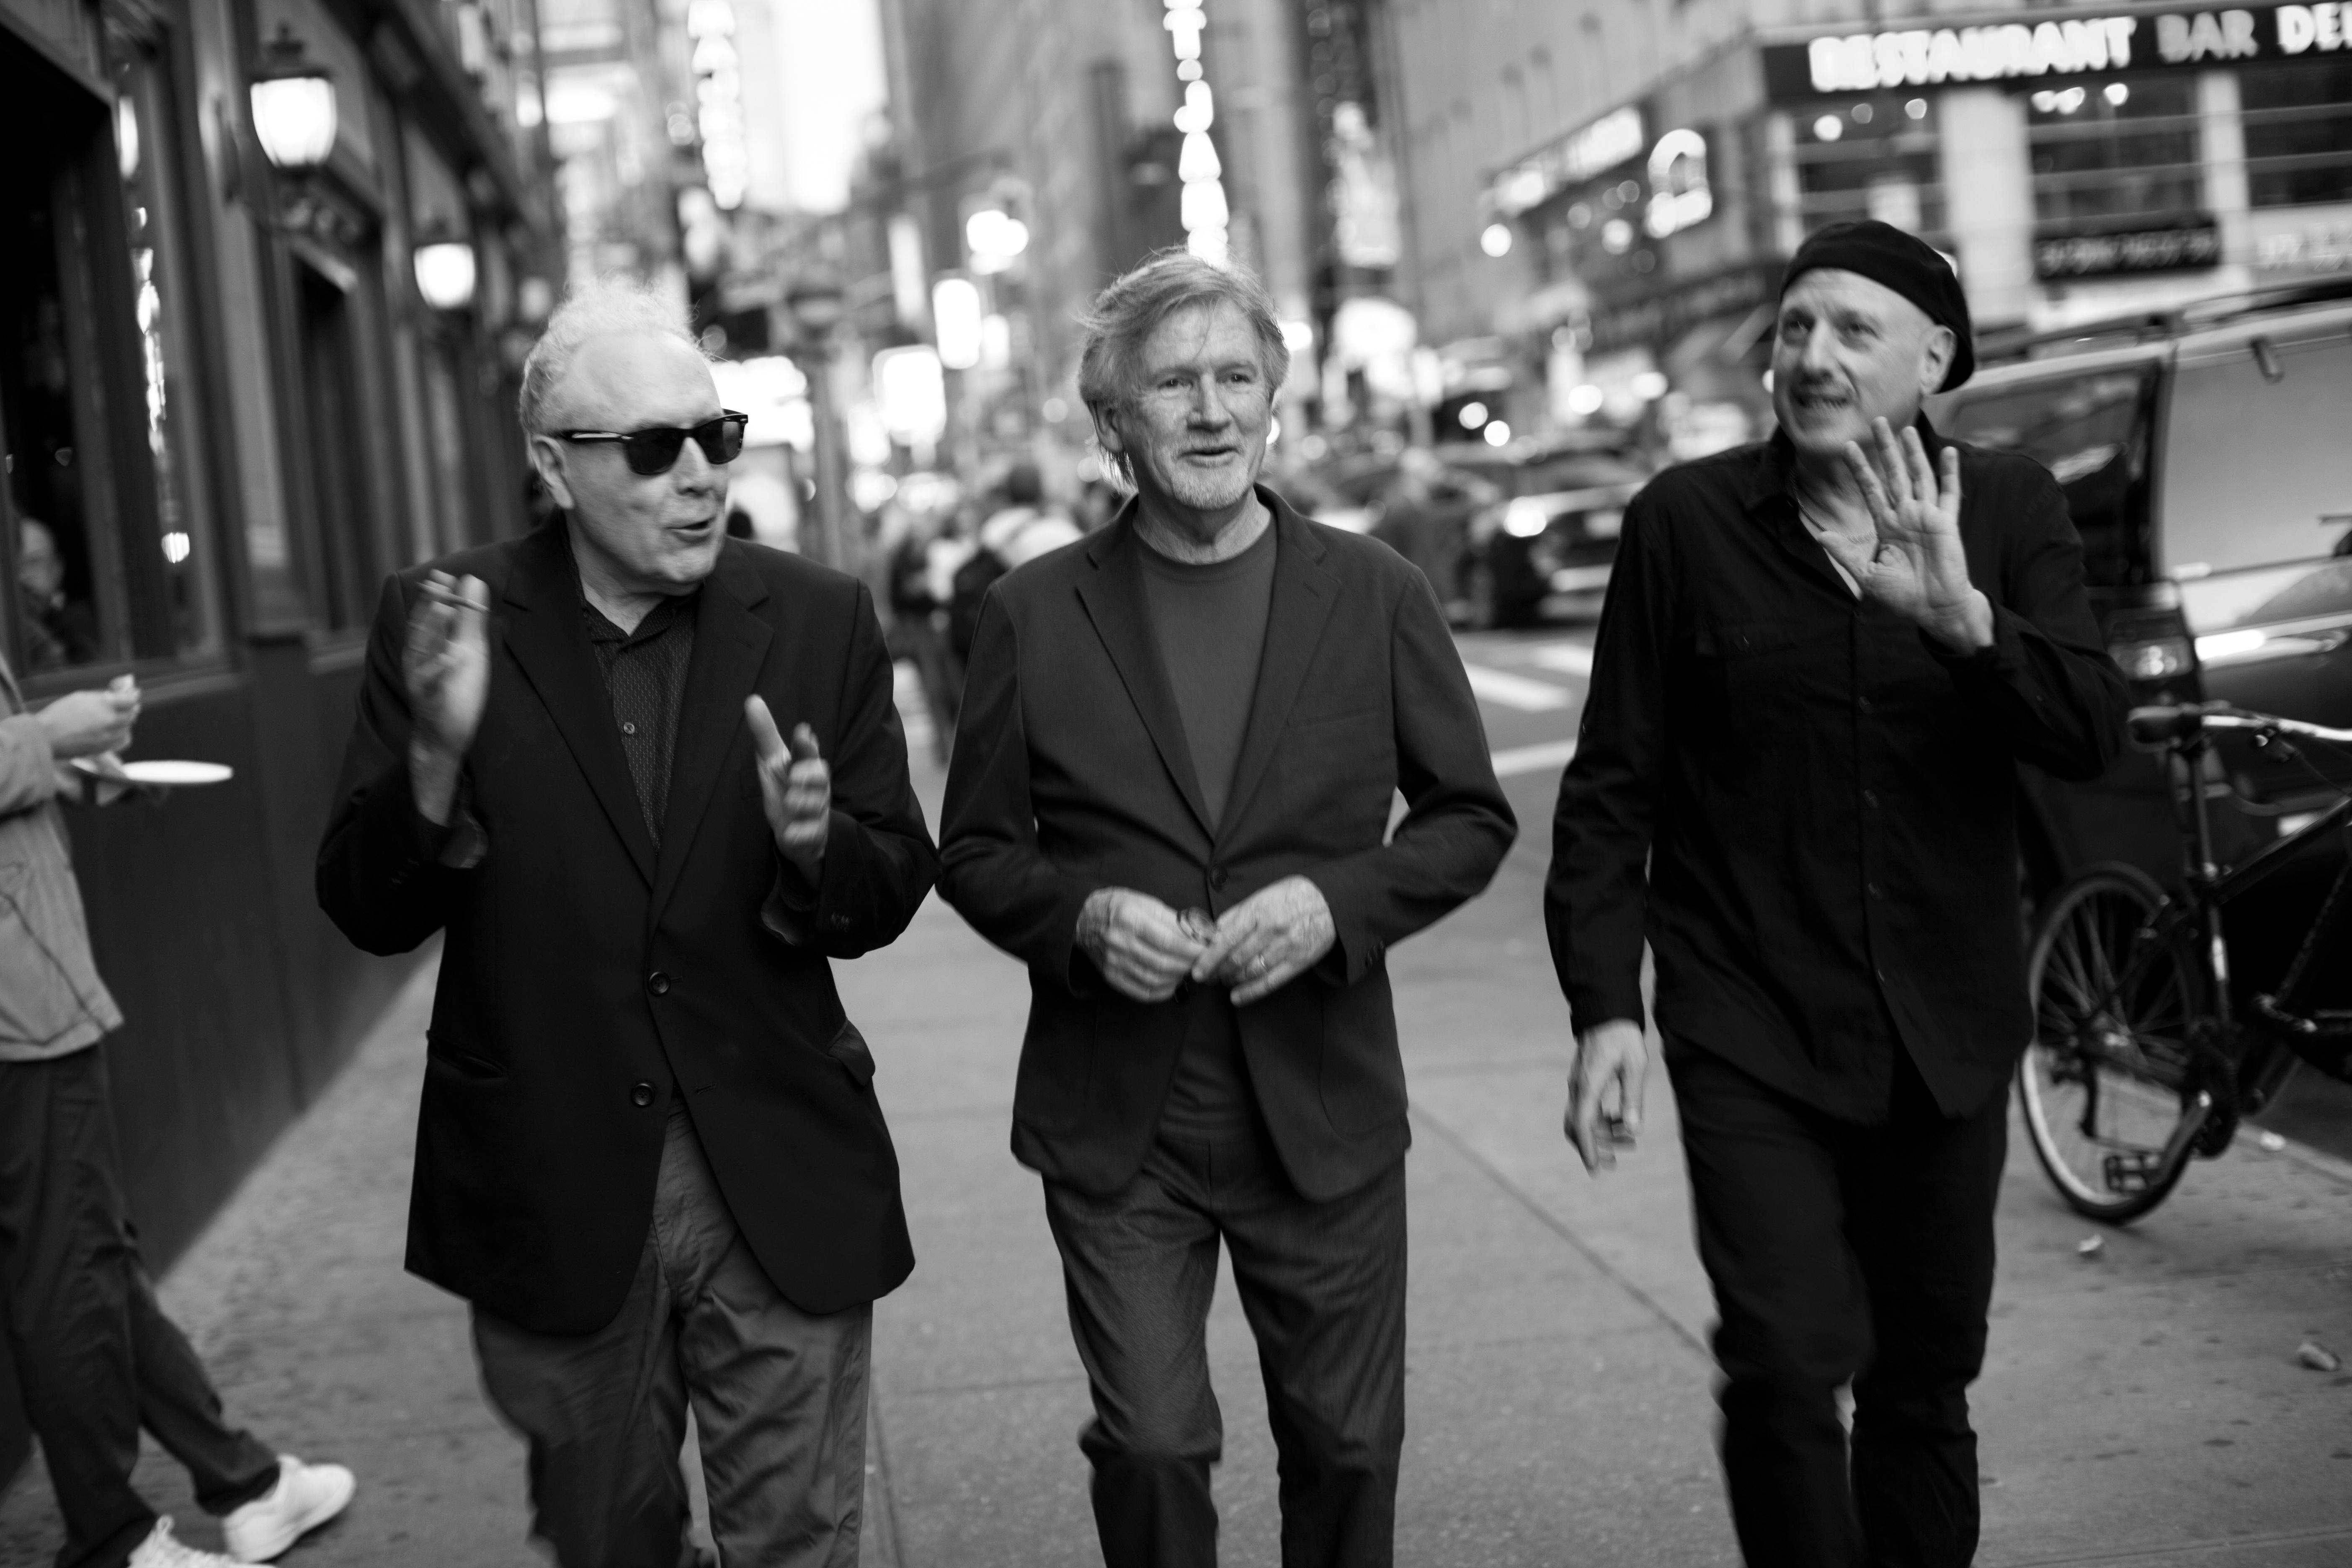 Alan Broadbent Trio: New York Notes review – joyful twists and turns